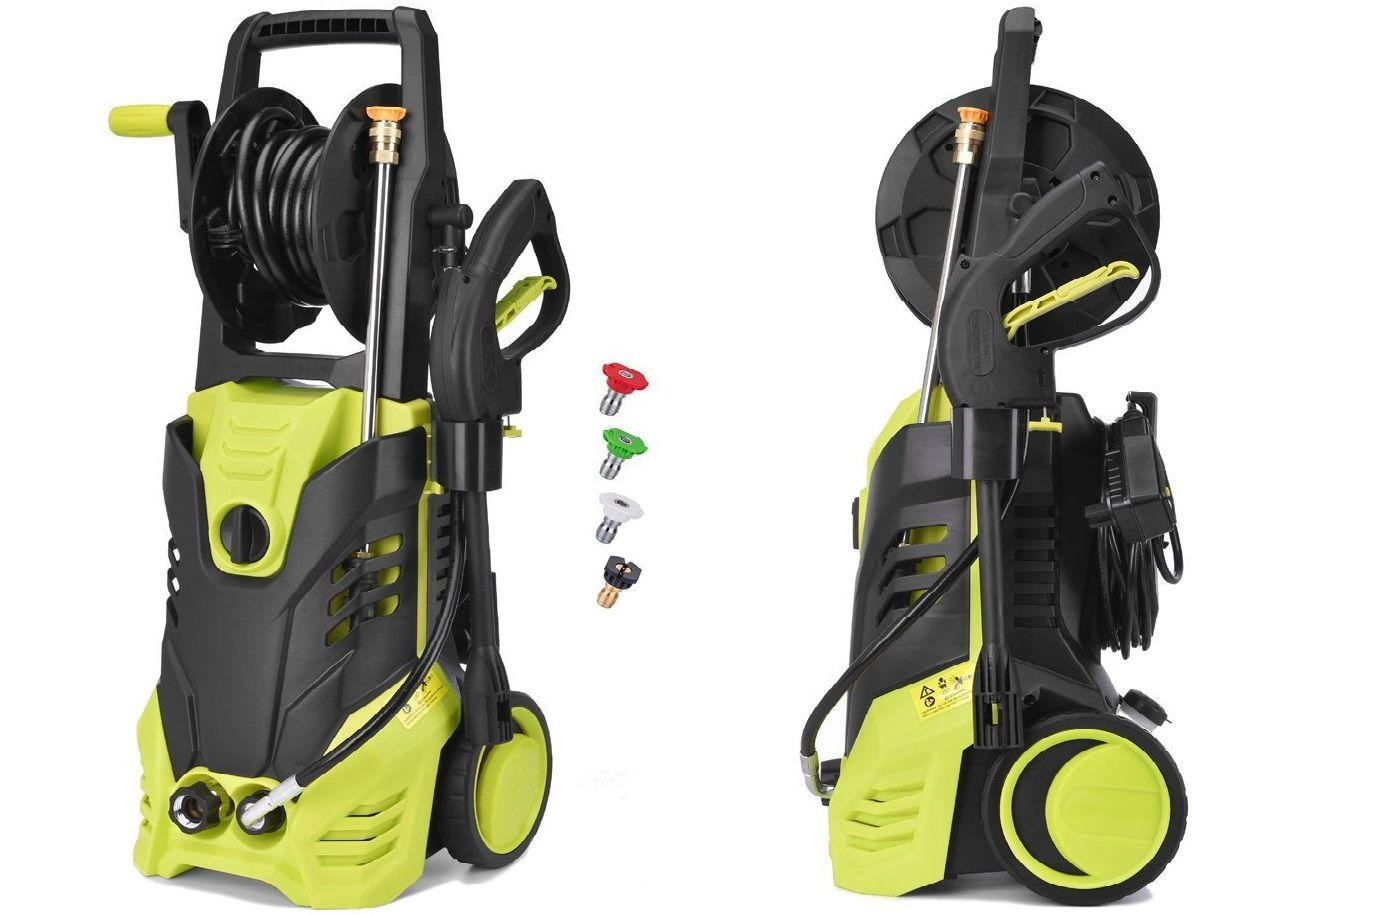 Weffort Electric Power Pressure Washer